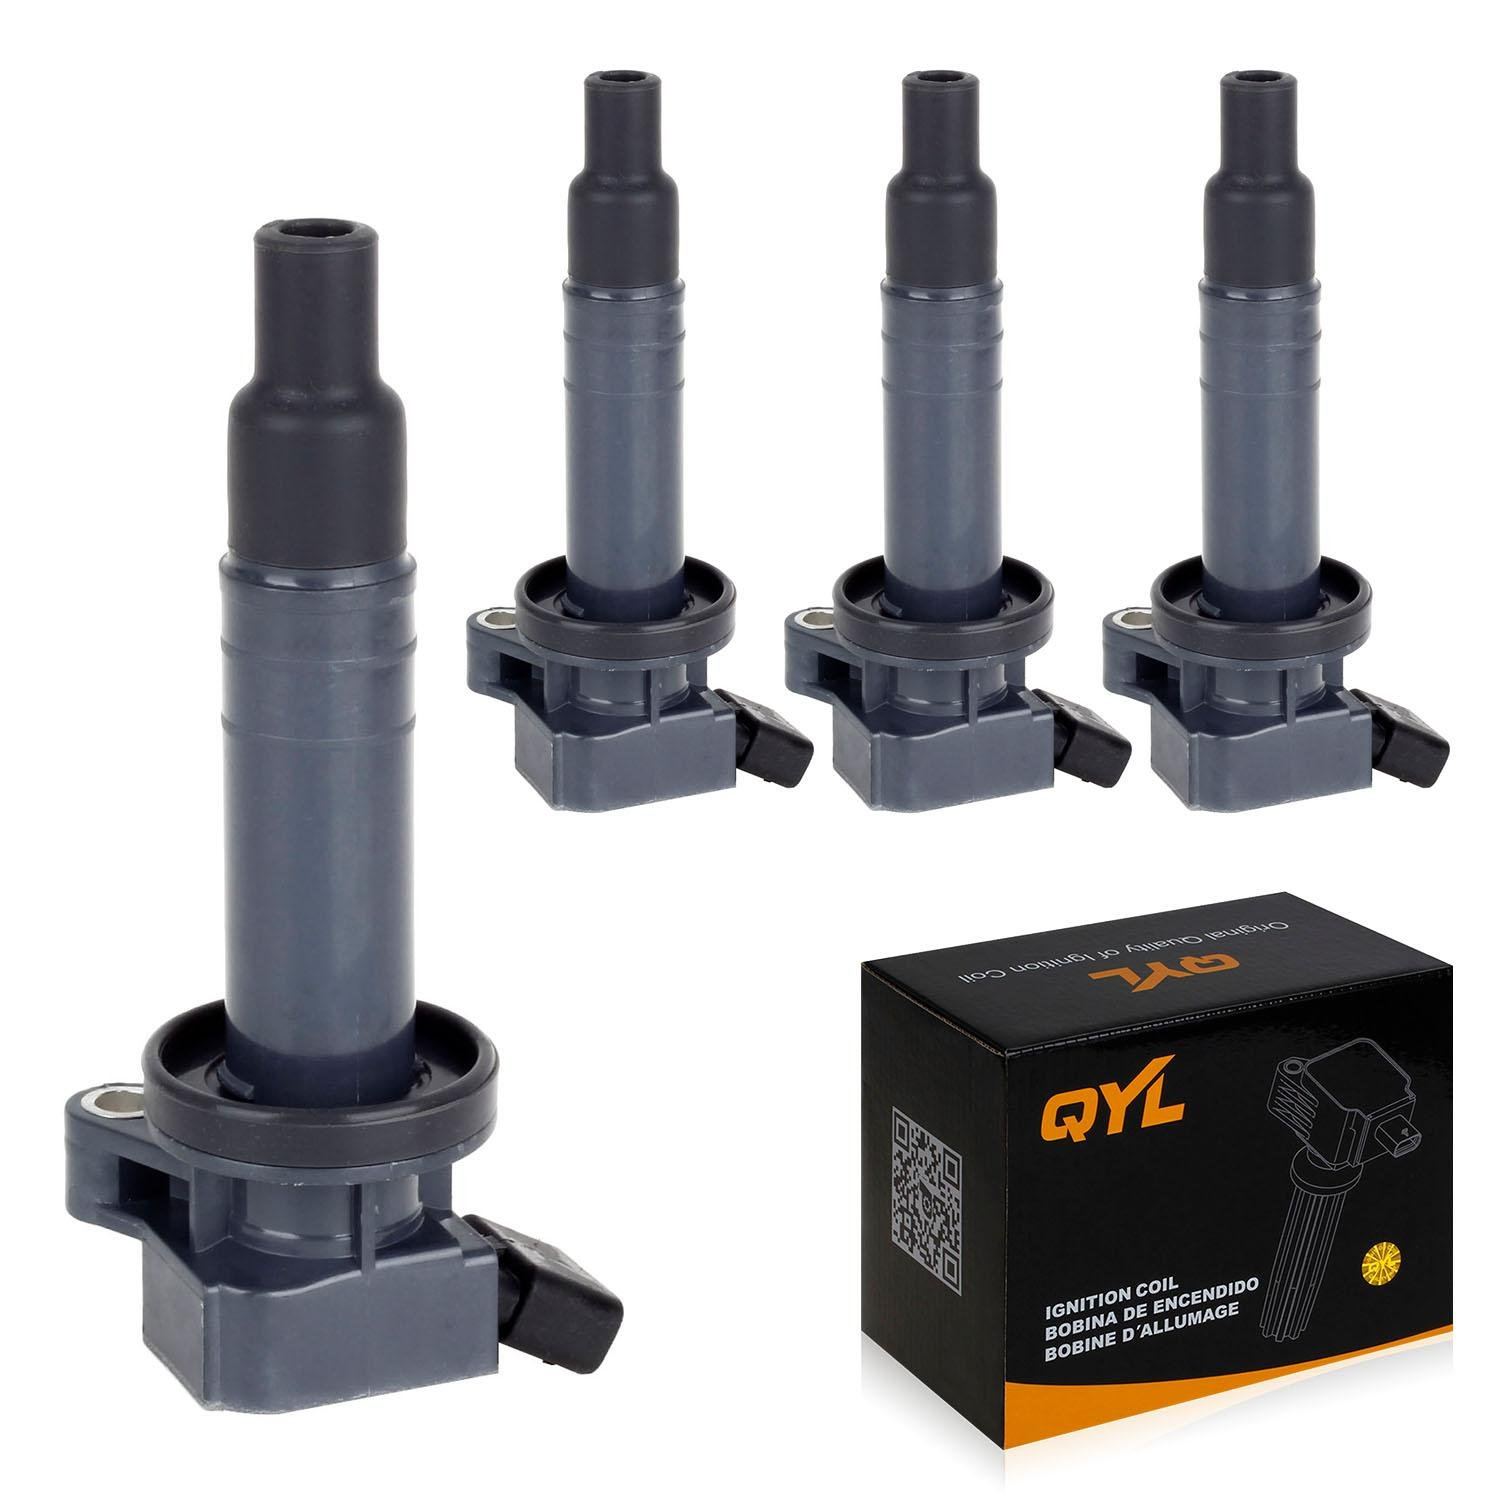 QYL Pack of 4 Ignition Coil Replacement for Toyota Celica GT Corolla Matrix MR2 Pontiac Vibe Chevy Prizm L4 1.8L 1ZZFE UF247 9091902239 C1249 UF-247 UF-315